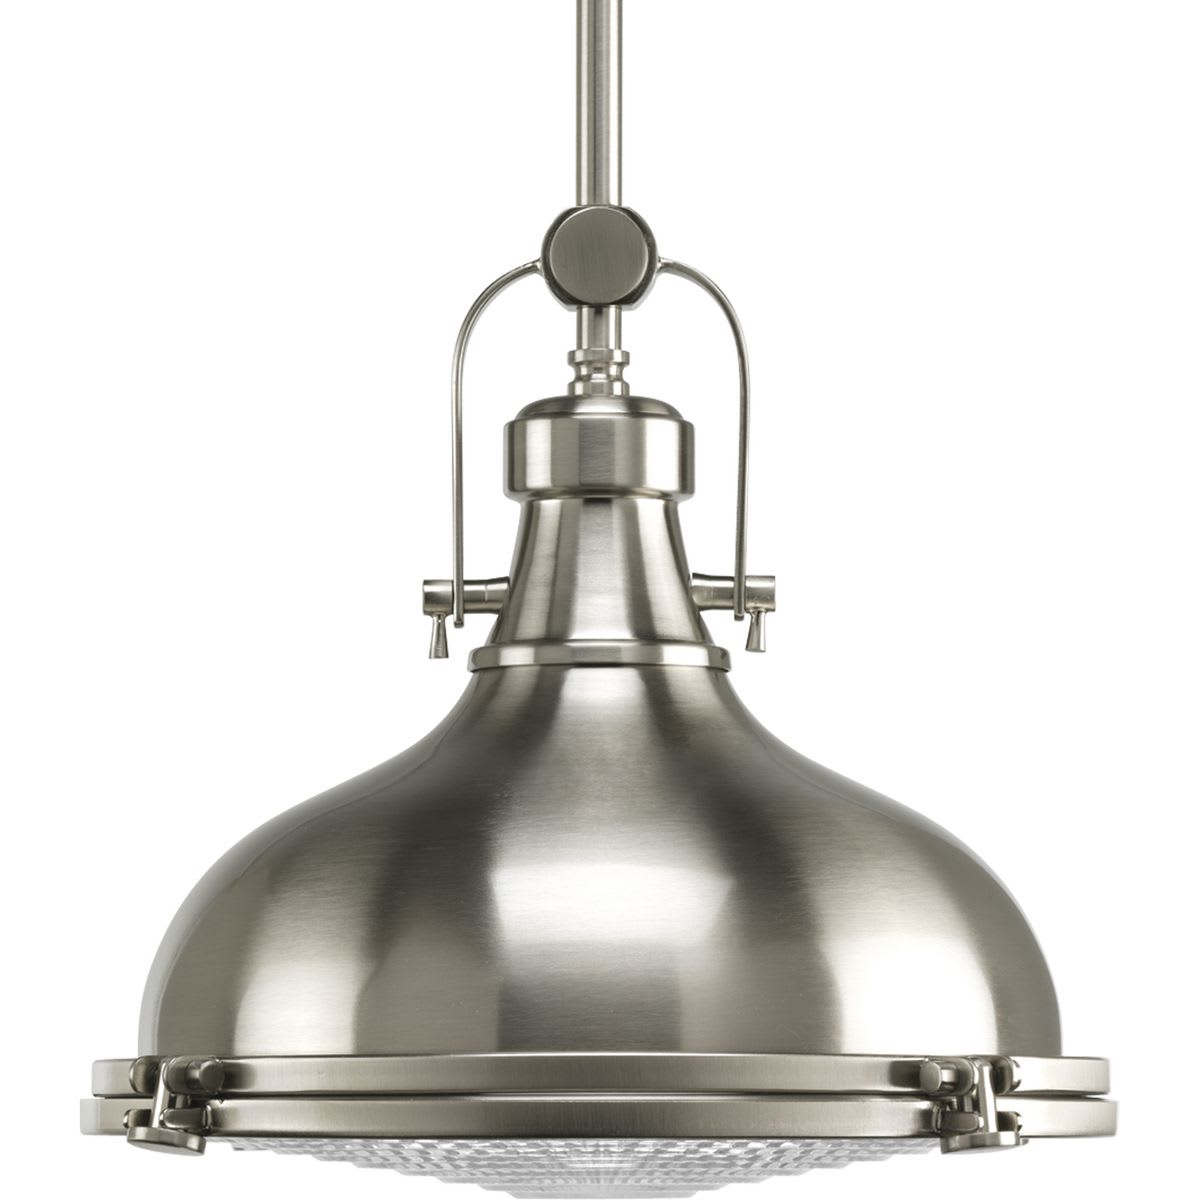 crosby collection large pendant light. Simple Crosby Fresnel Lens 12 On Crosby Collection Large Pendant Light